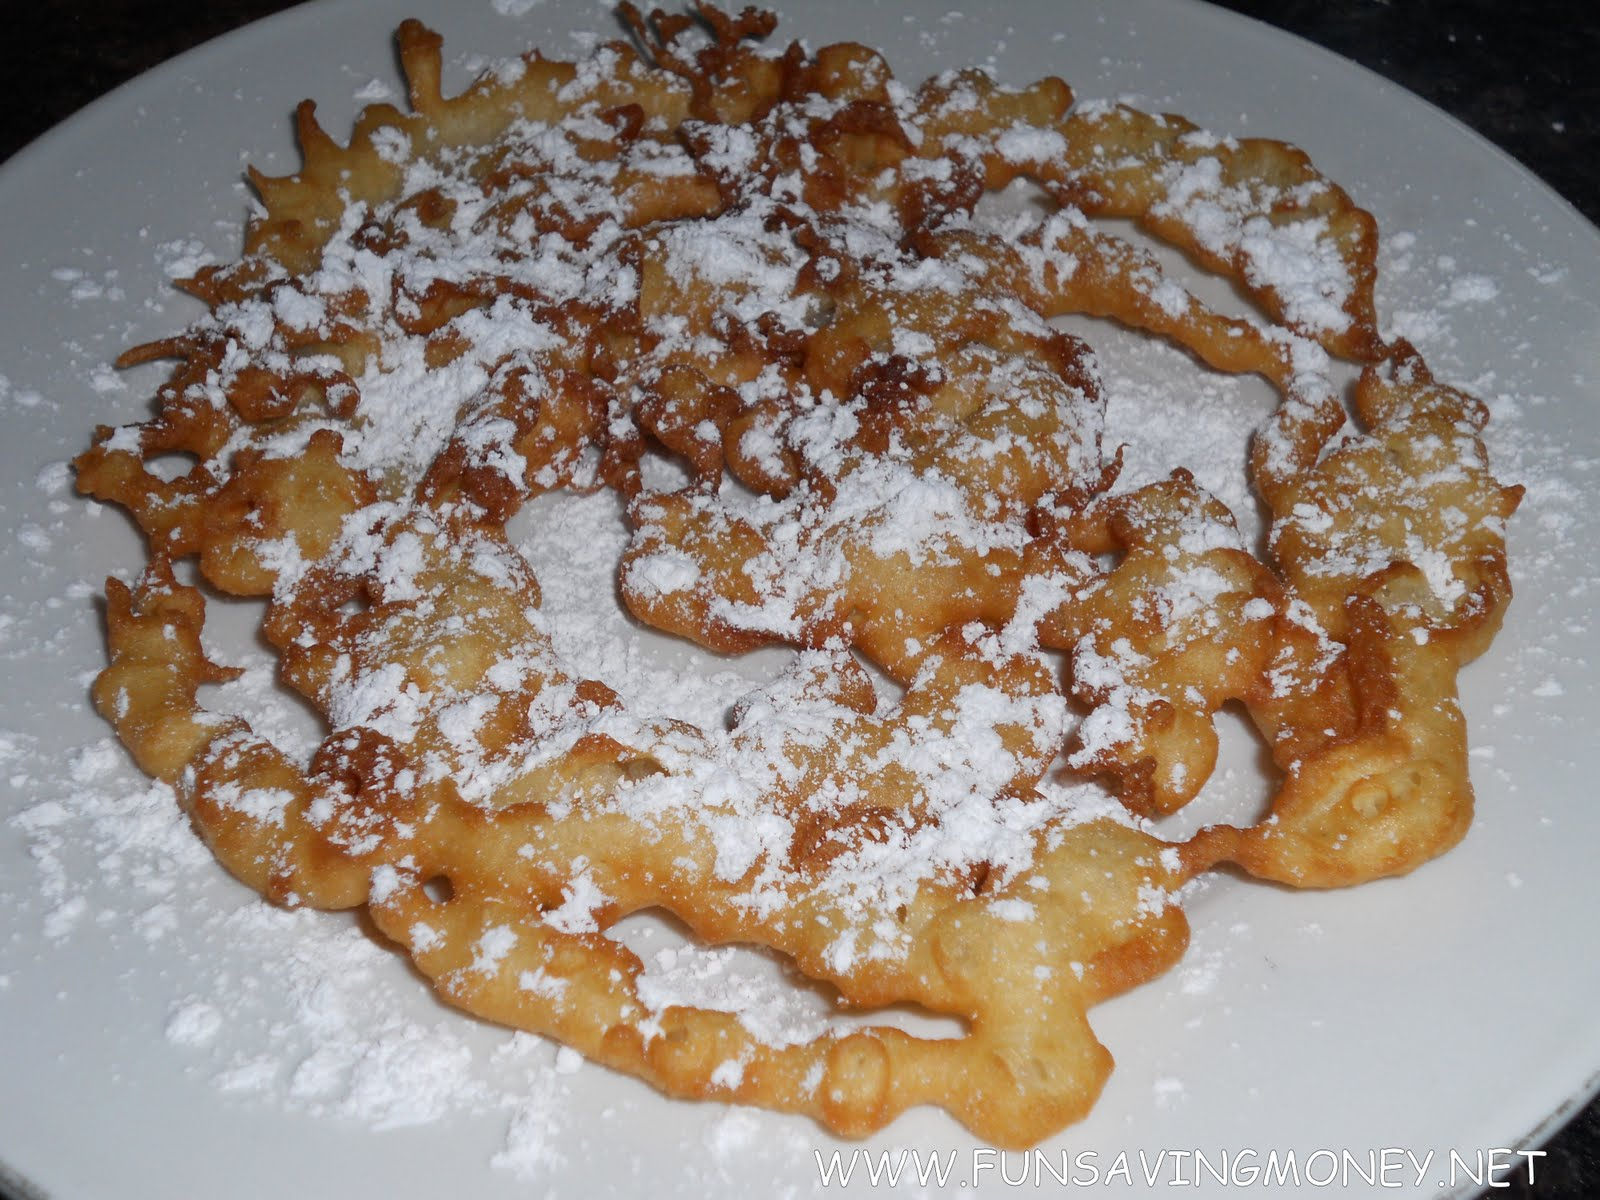 Ingredients: Makes 4 Funnel Cakes